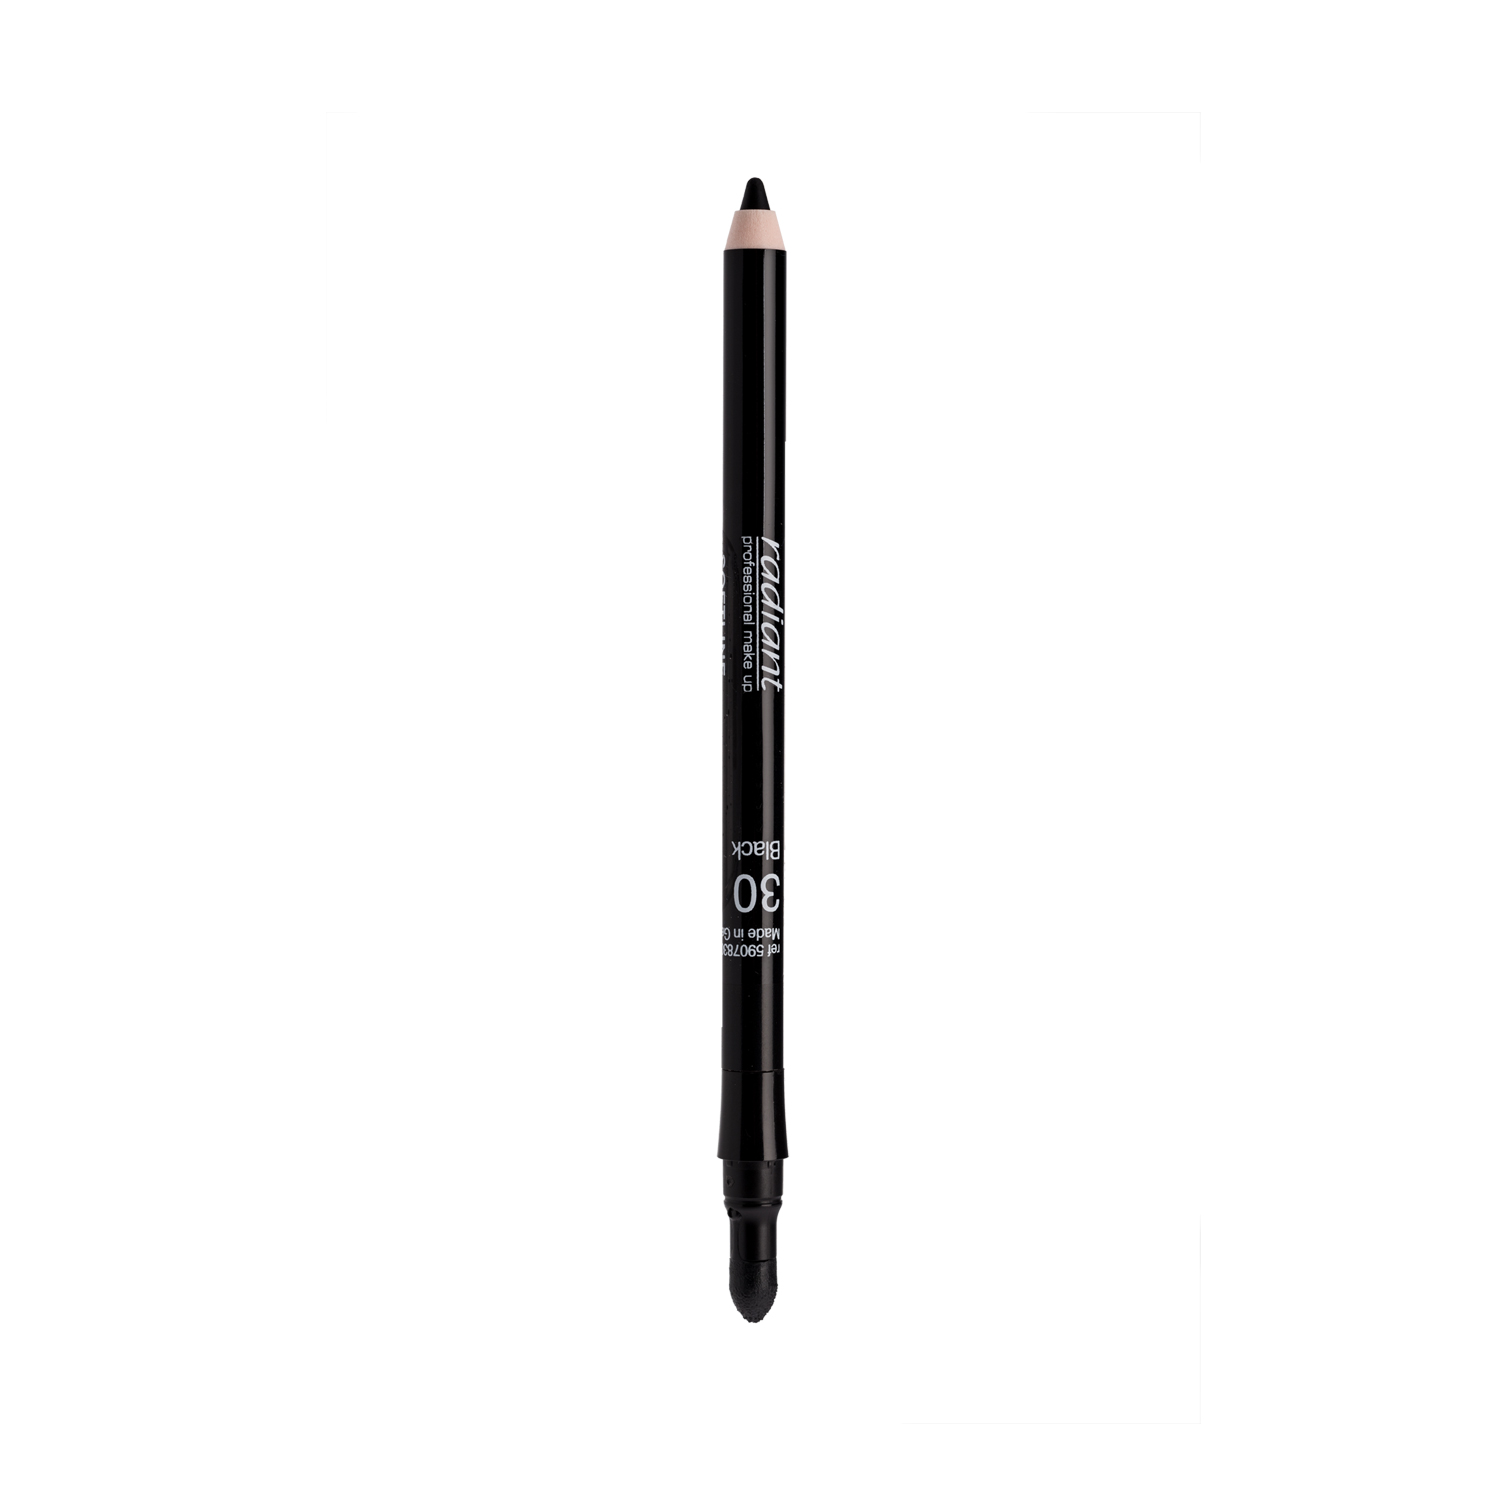 SOFTLINE WATERPROOF EYE PENCIL (30 Smoky Black)